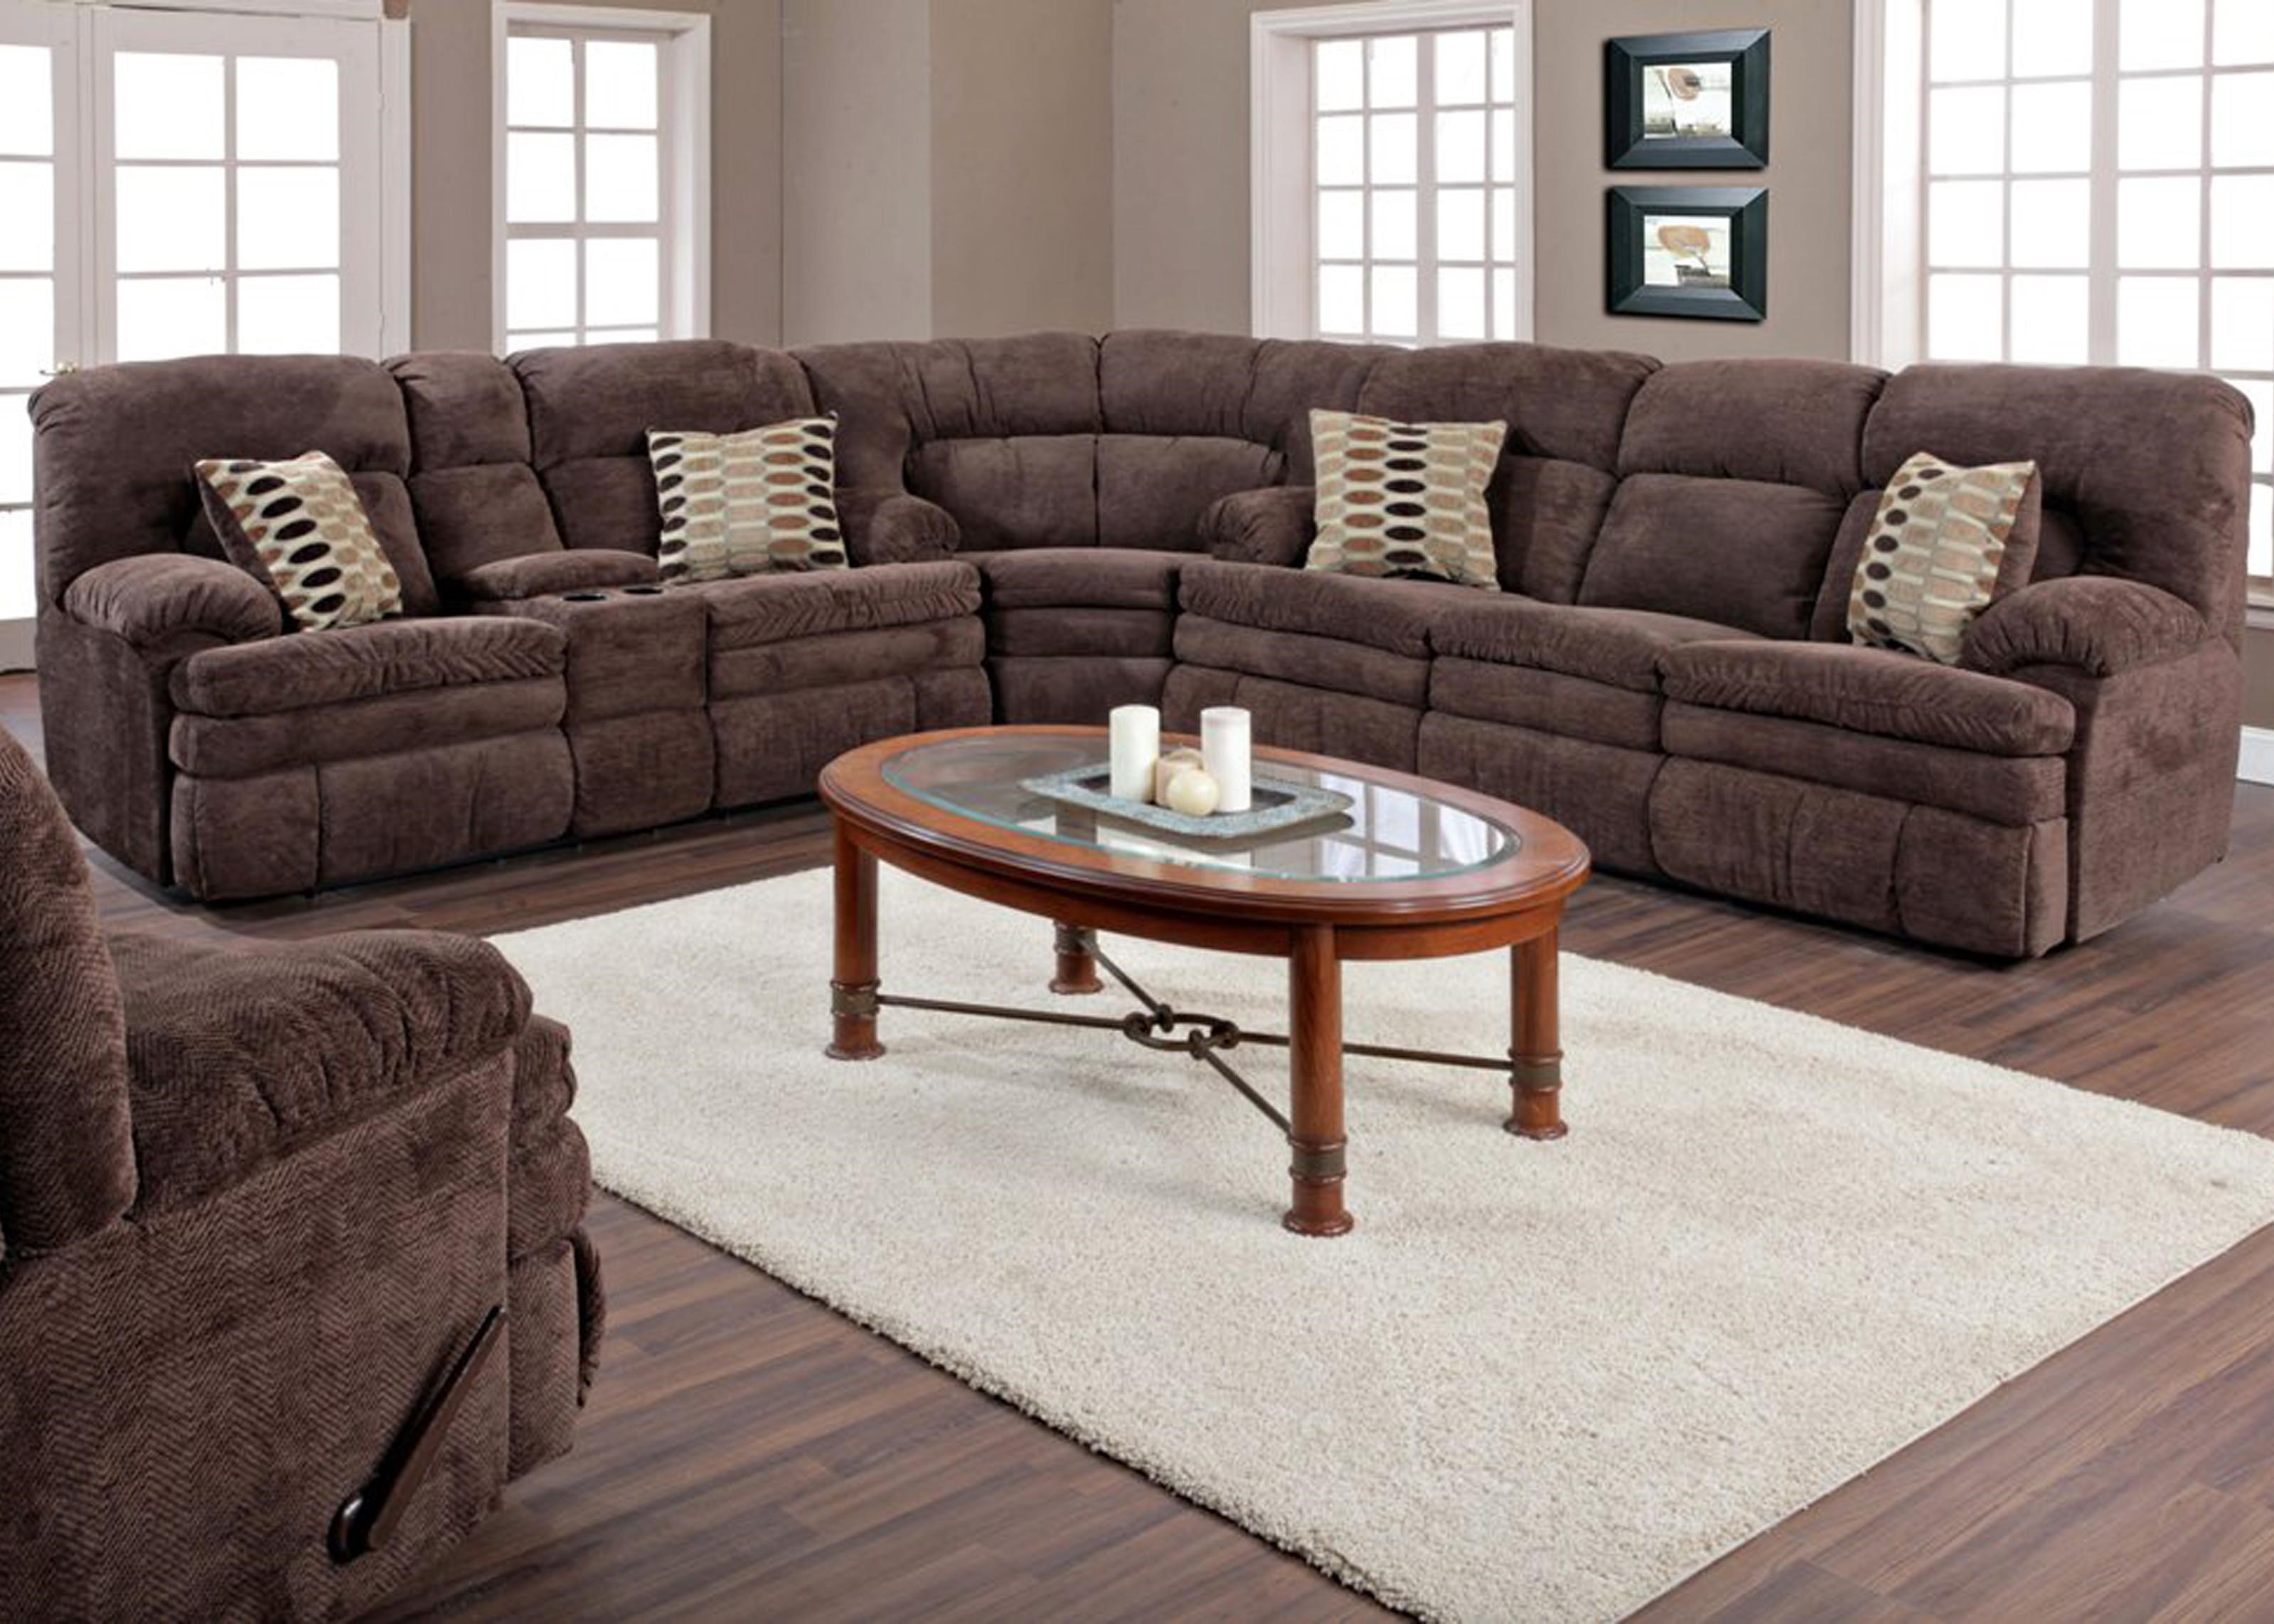 Exceptional Shown With Coordinating Collection Loveseat; Shown As Modular Component In  Sectional Configuration